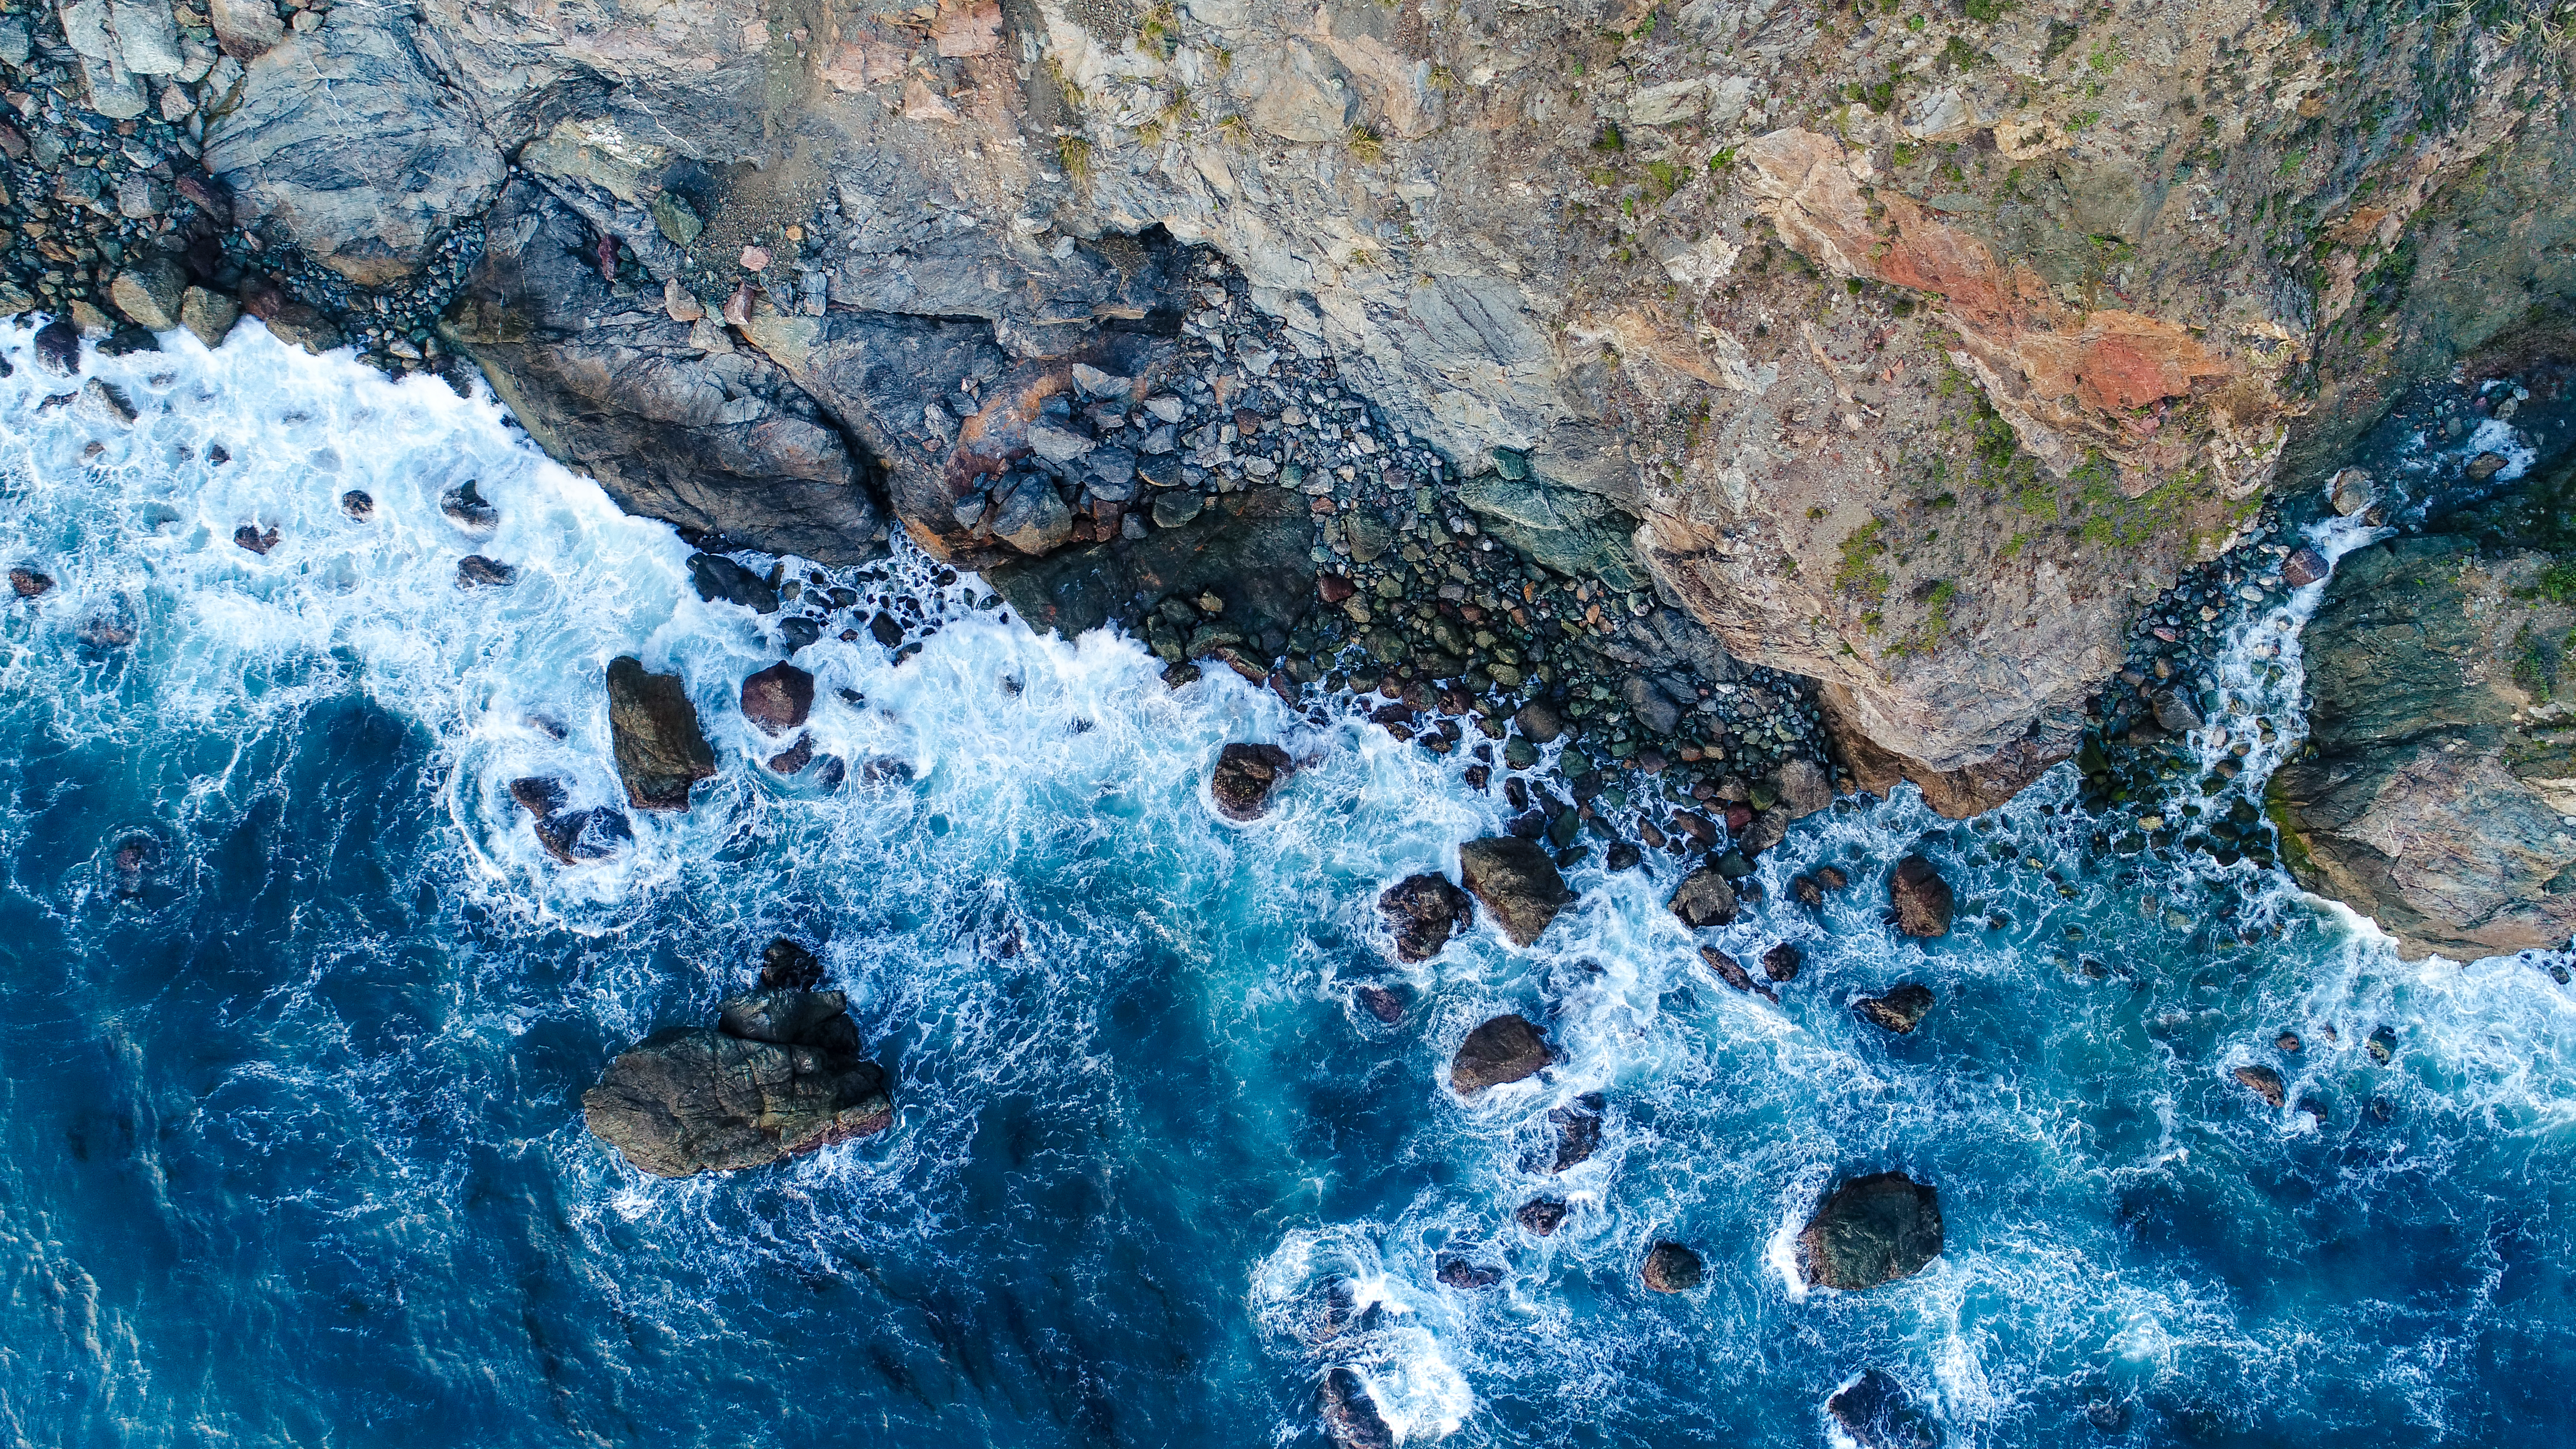 51435 download wallpaper Nature, Water, Sea, Rocks, View From Above, Shore, Bank screensavers and pictures for free